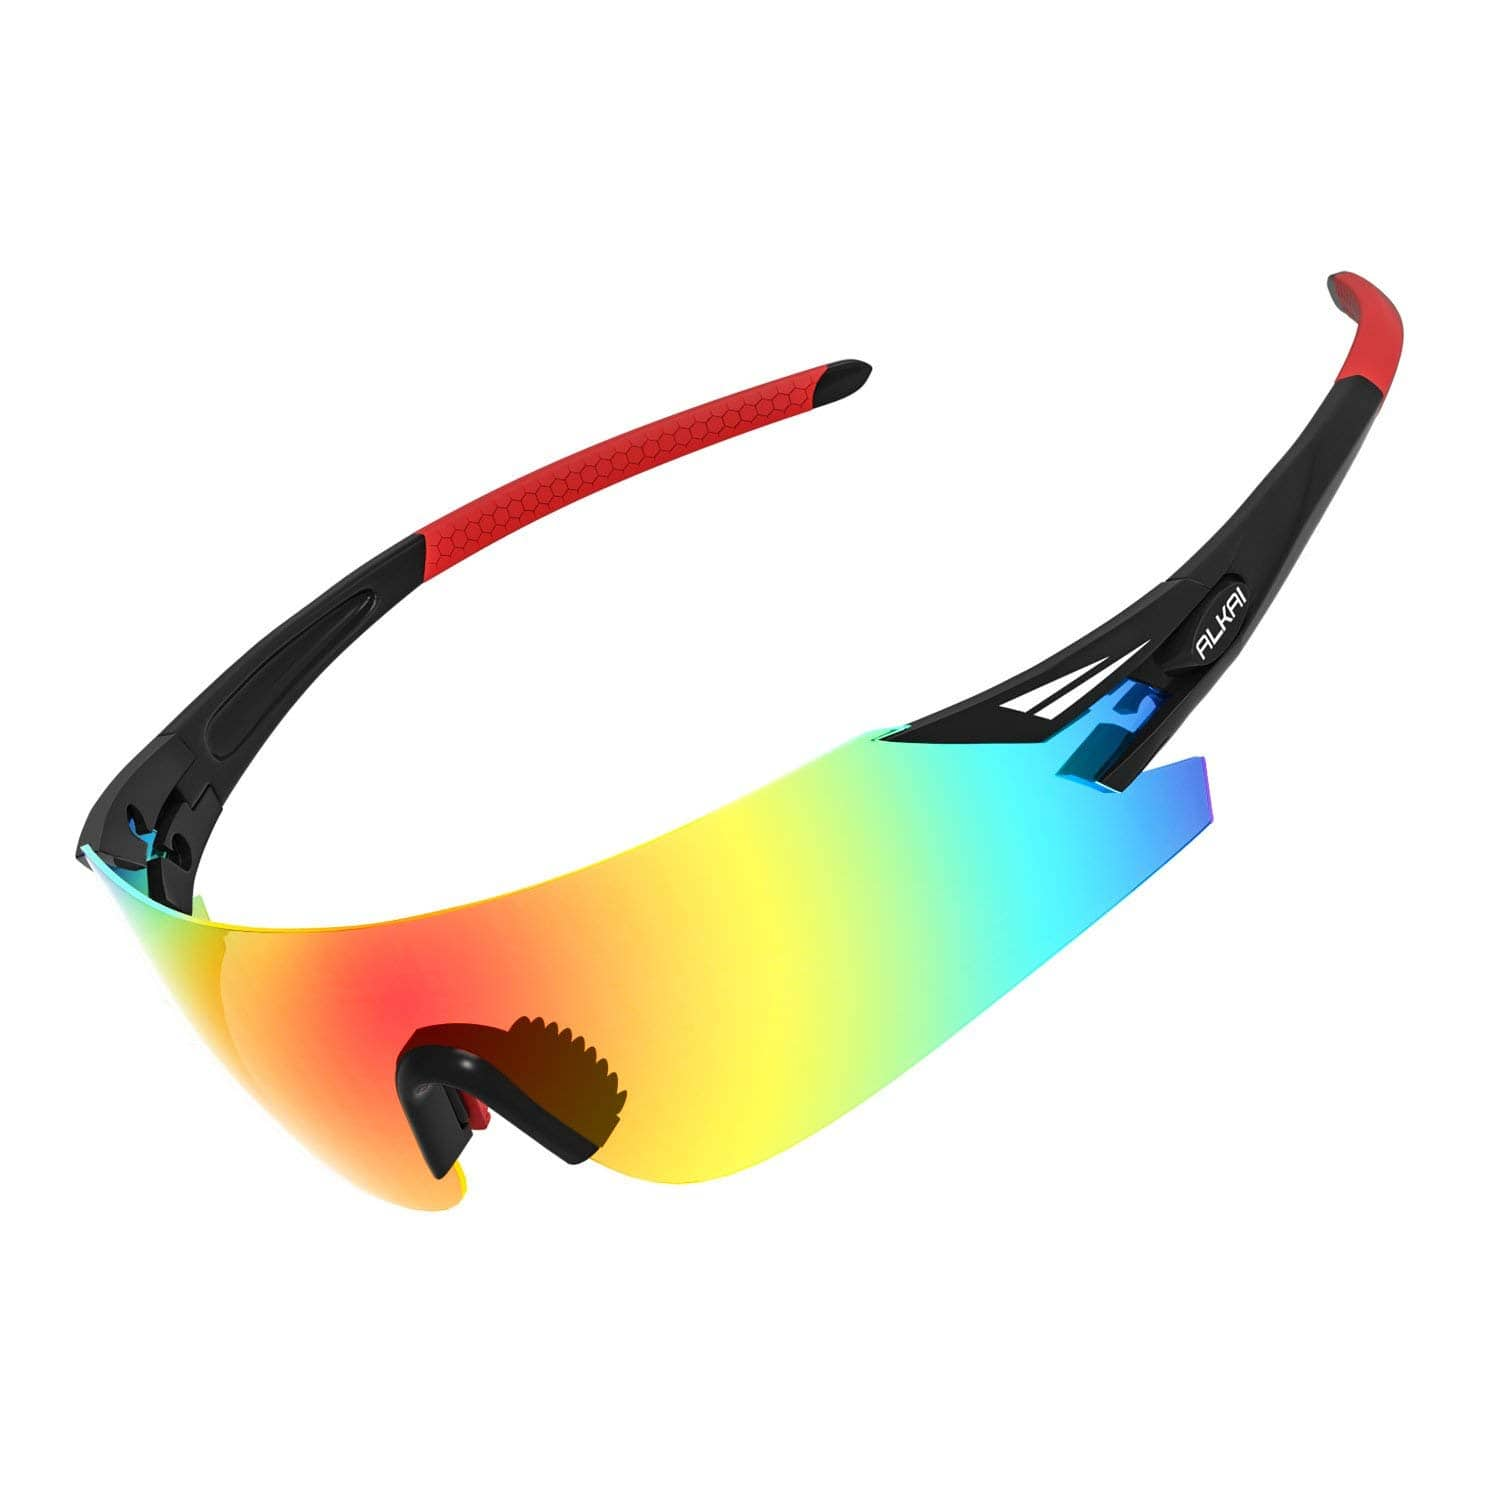 65% OFF - Men's WildKiz Cycling Sunglasses, Running Sunglasses, Polarized and 100% UV Protective, Live Wild Series Sports Sunglasses - $7.92